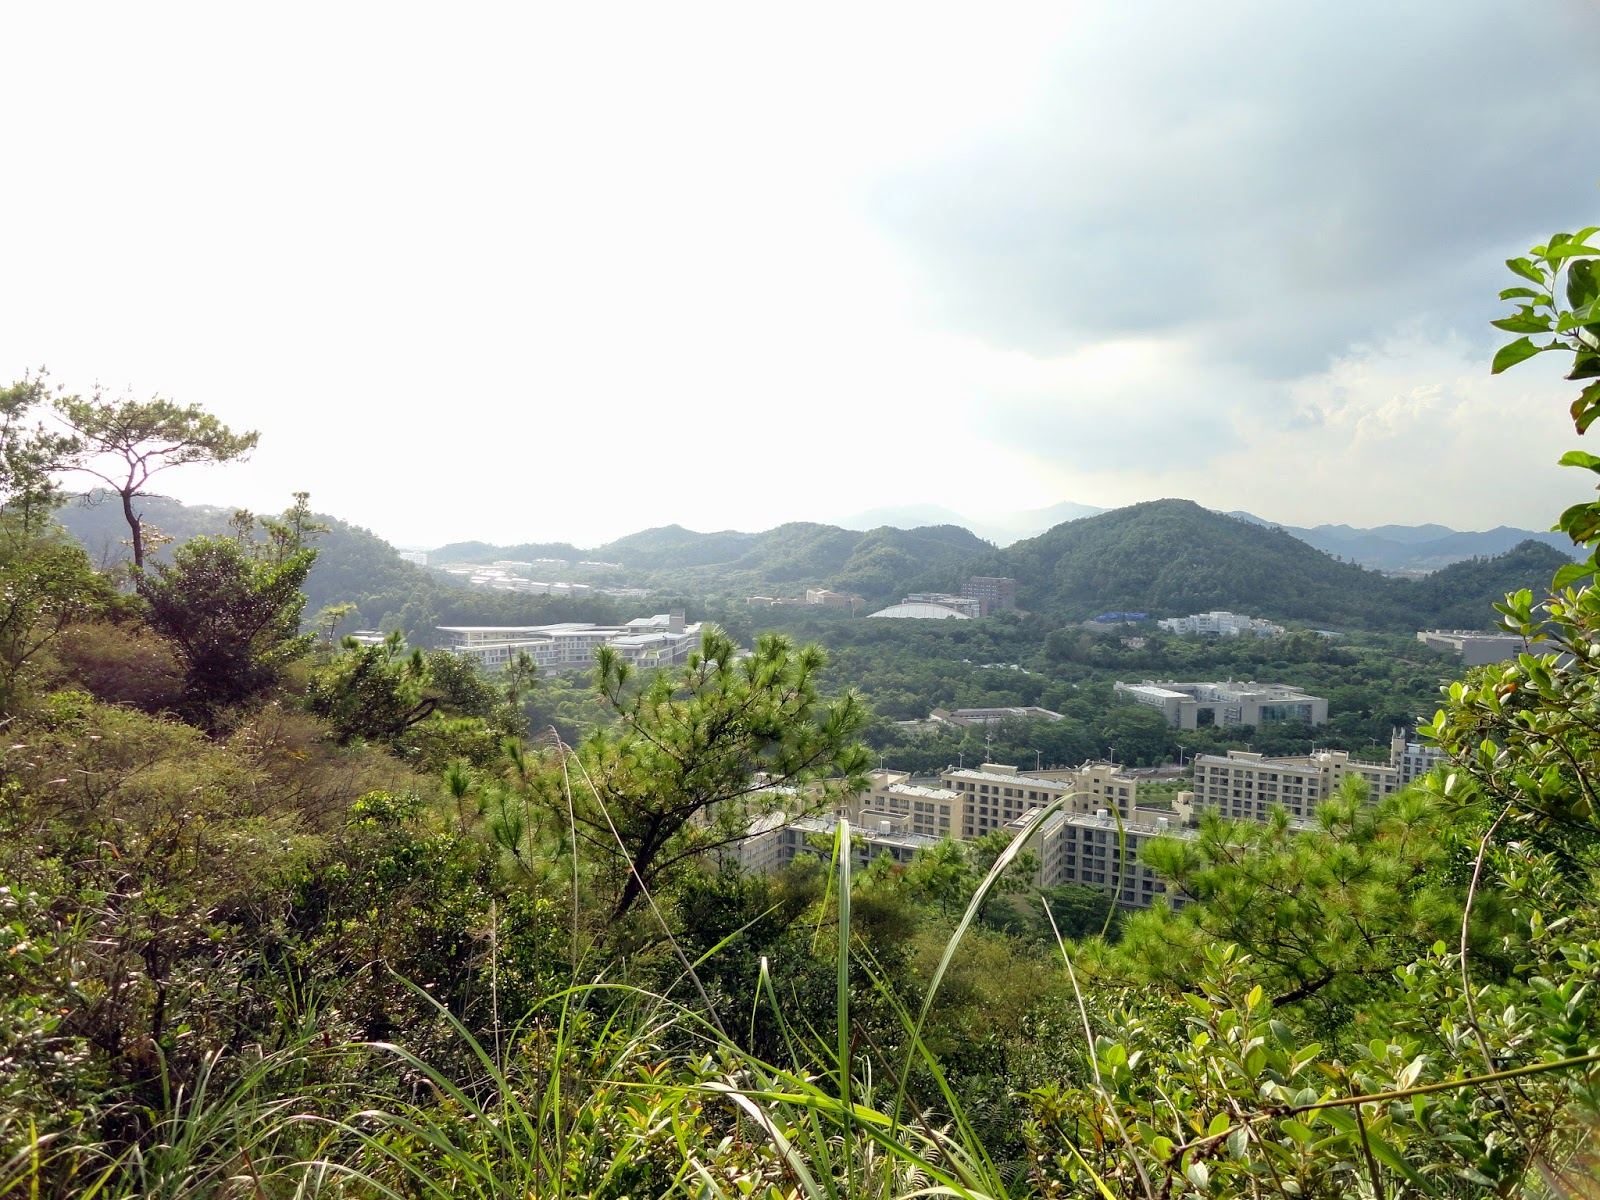 Hiking Mountains in ZhuHai